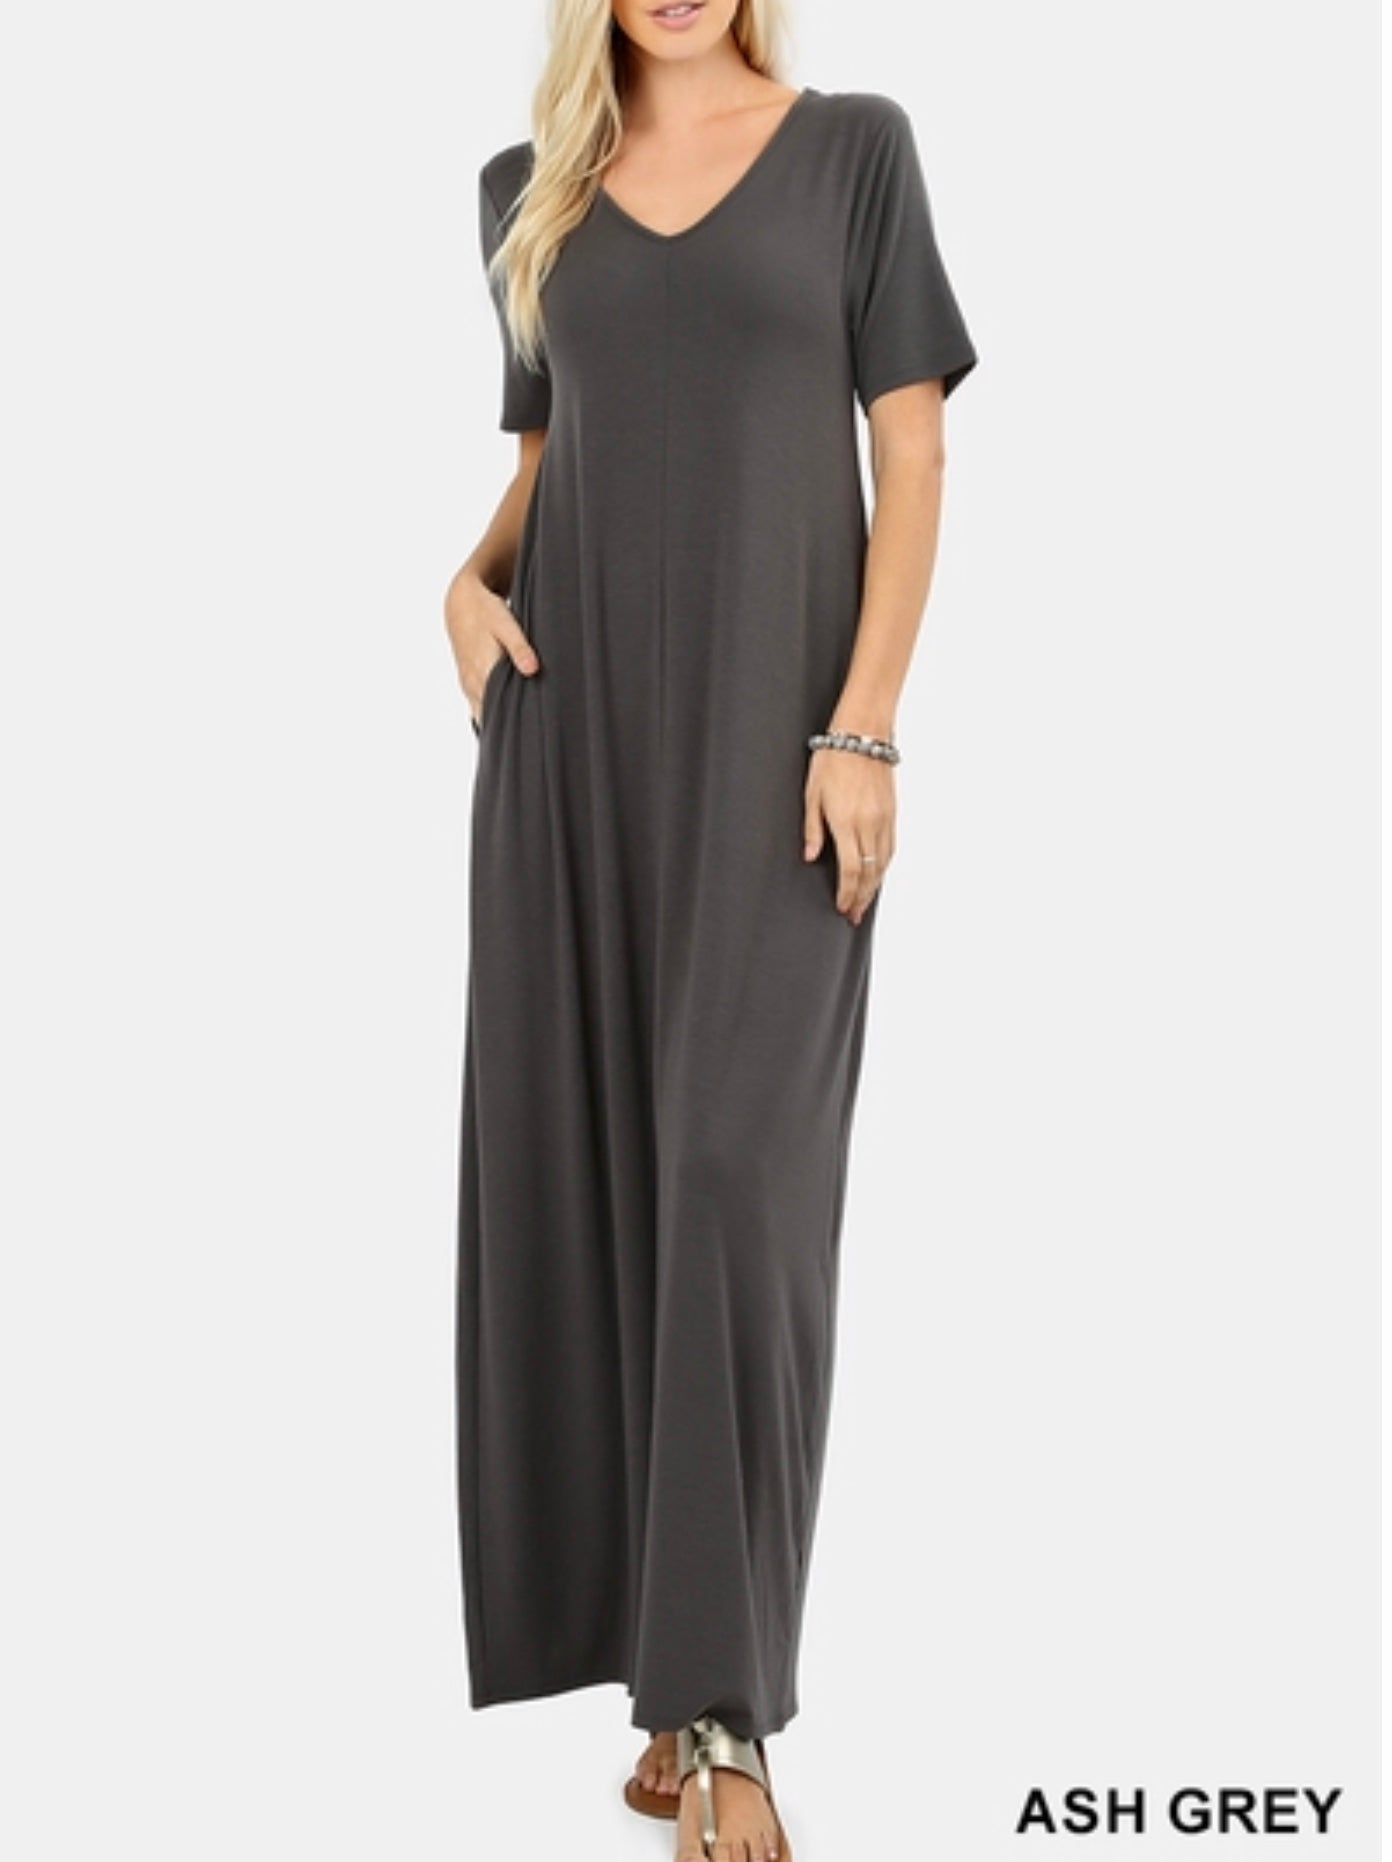 Grey maxi dress with pockets (plus available)